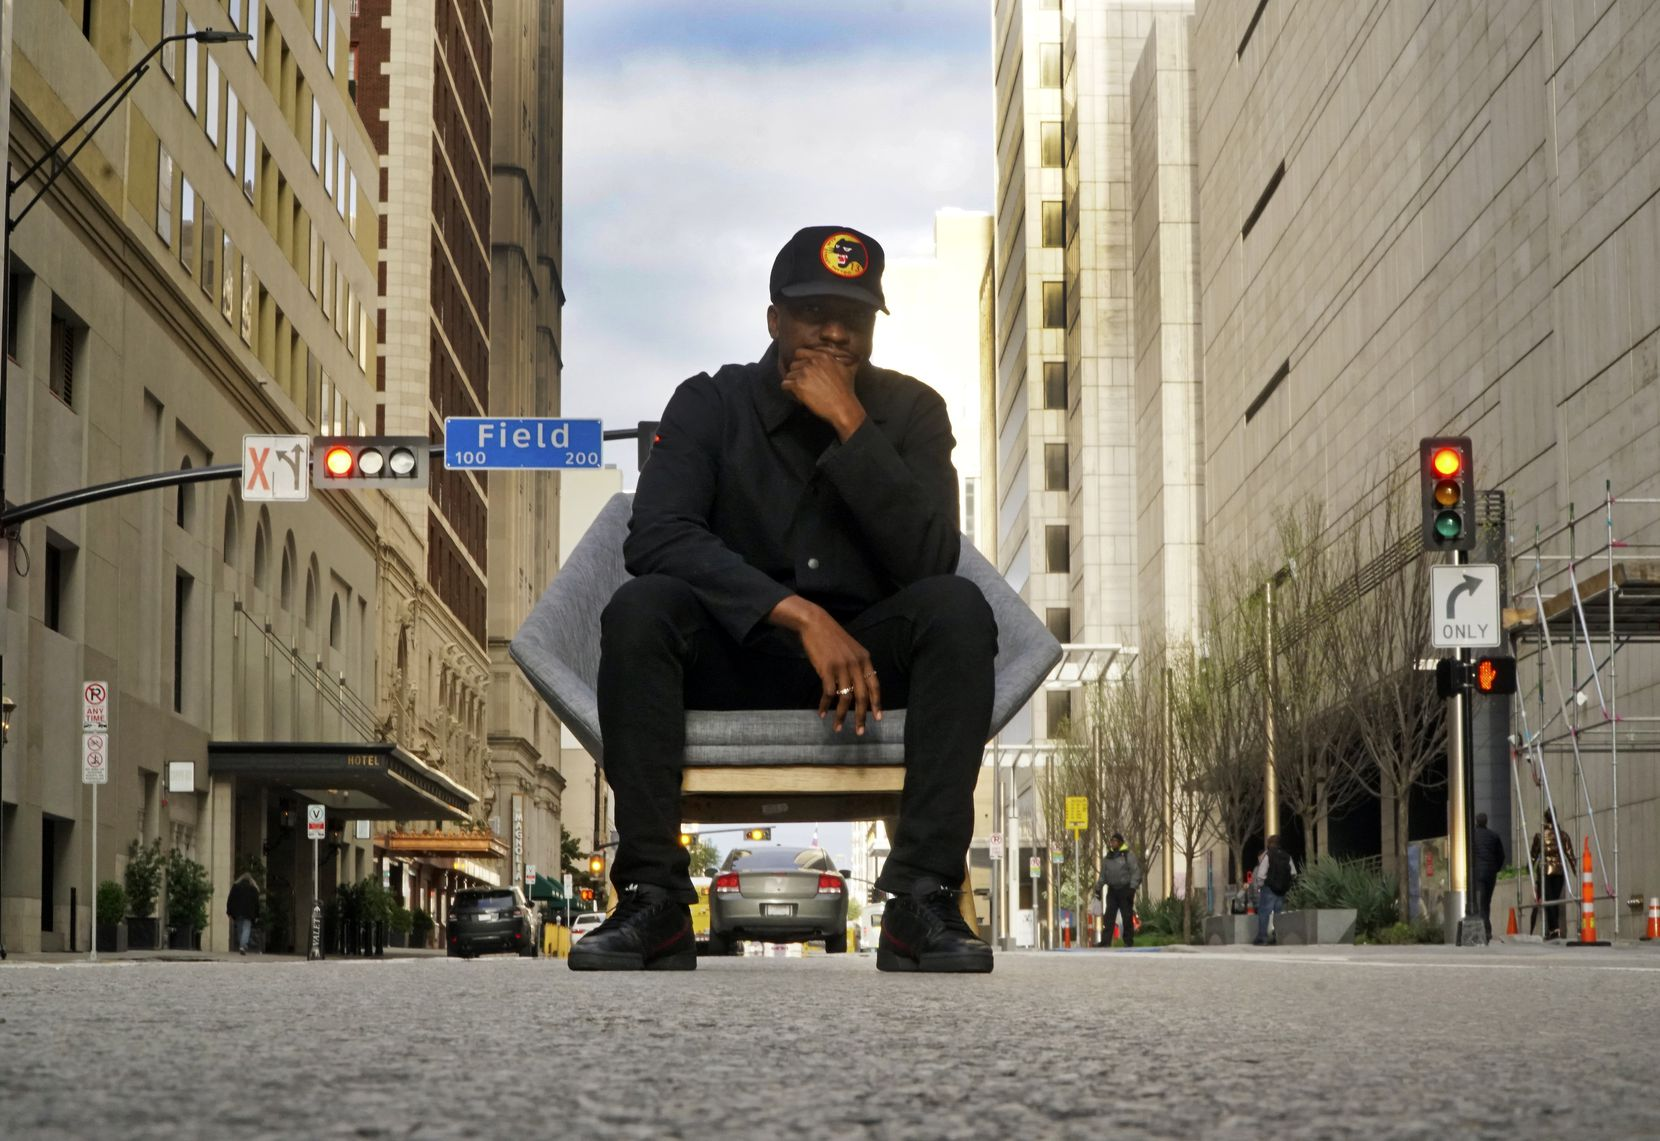 "Dallas hip-hop artist David Morgan says he feels bad about sharing his recent good career news with the world in the midst of the pandemic. ""It's supposed to be a good week, but this virus stuff has made it kind of hard to celebrate,"" Morgan says."